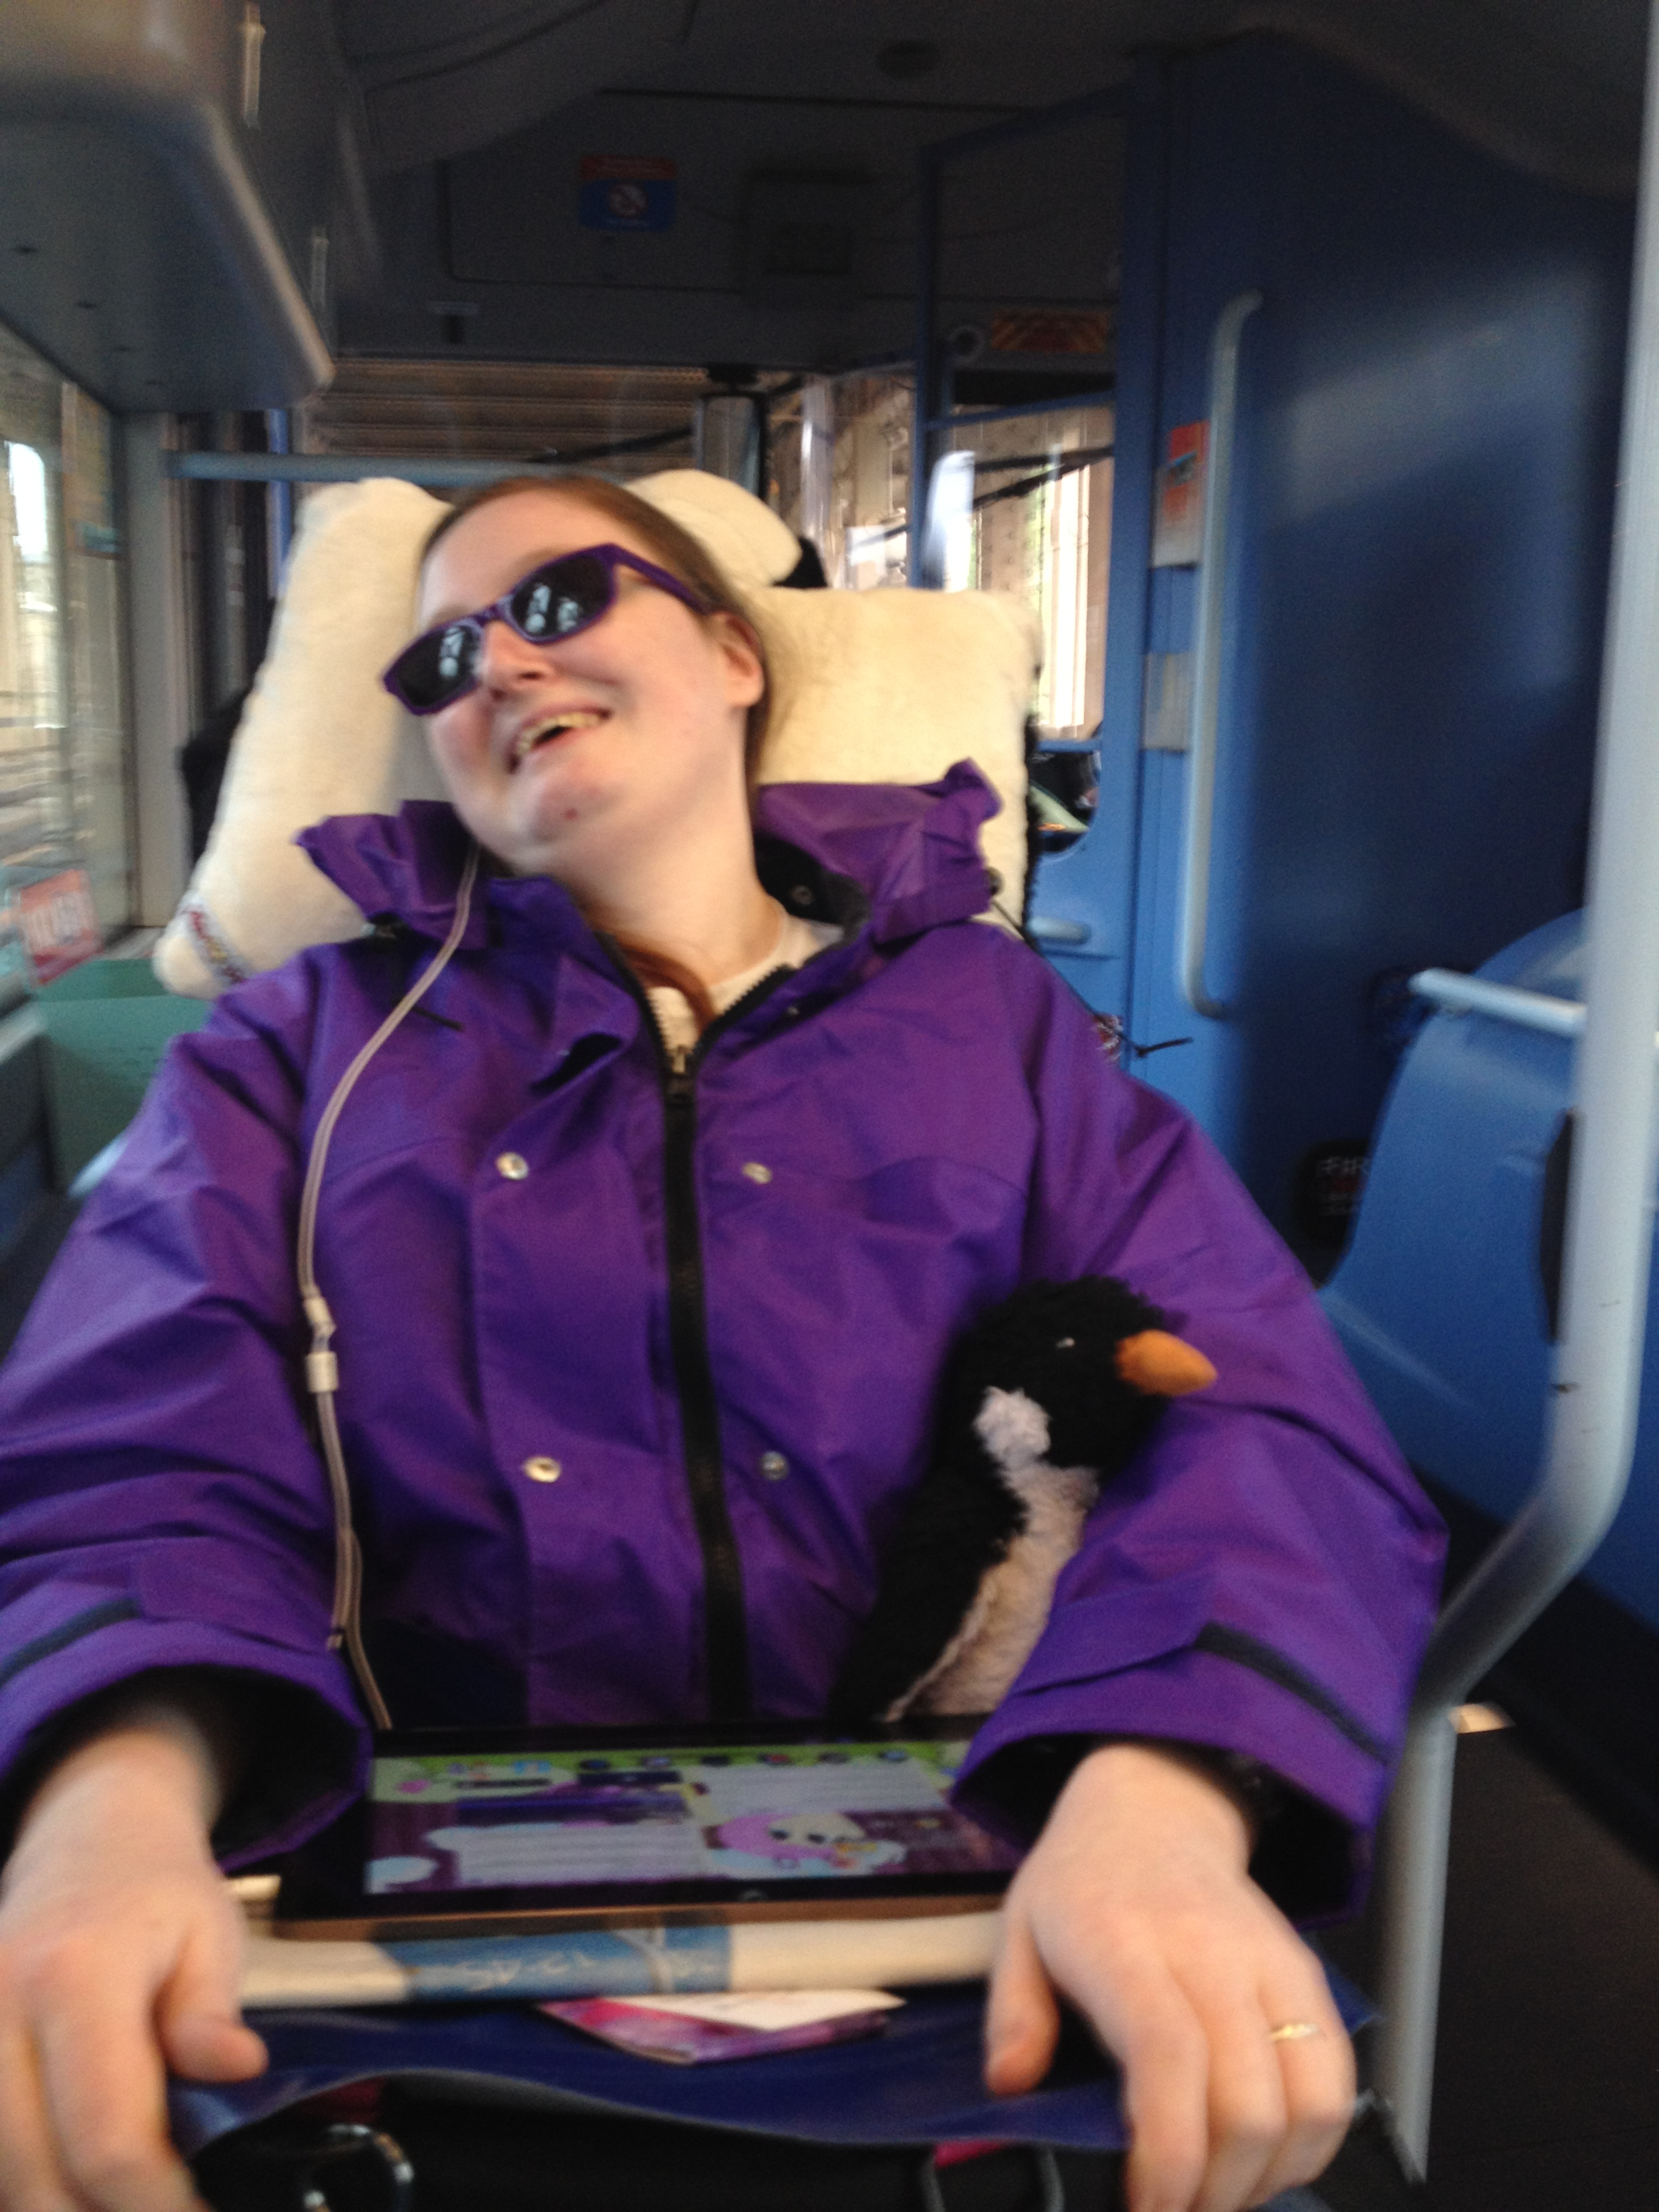 Danni in their new wheelchair on the bus